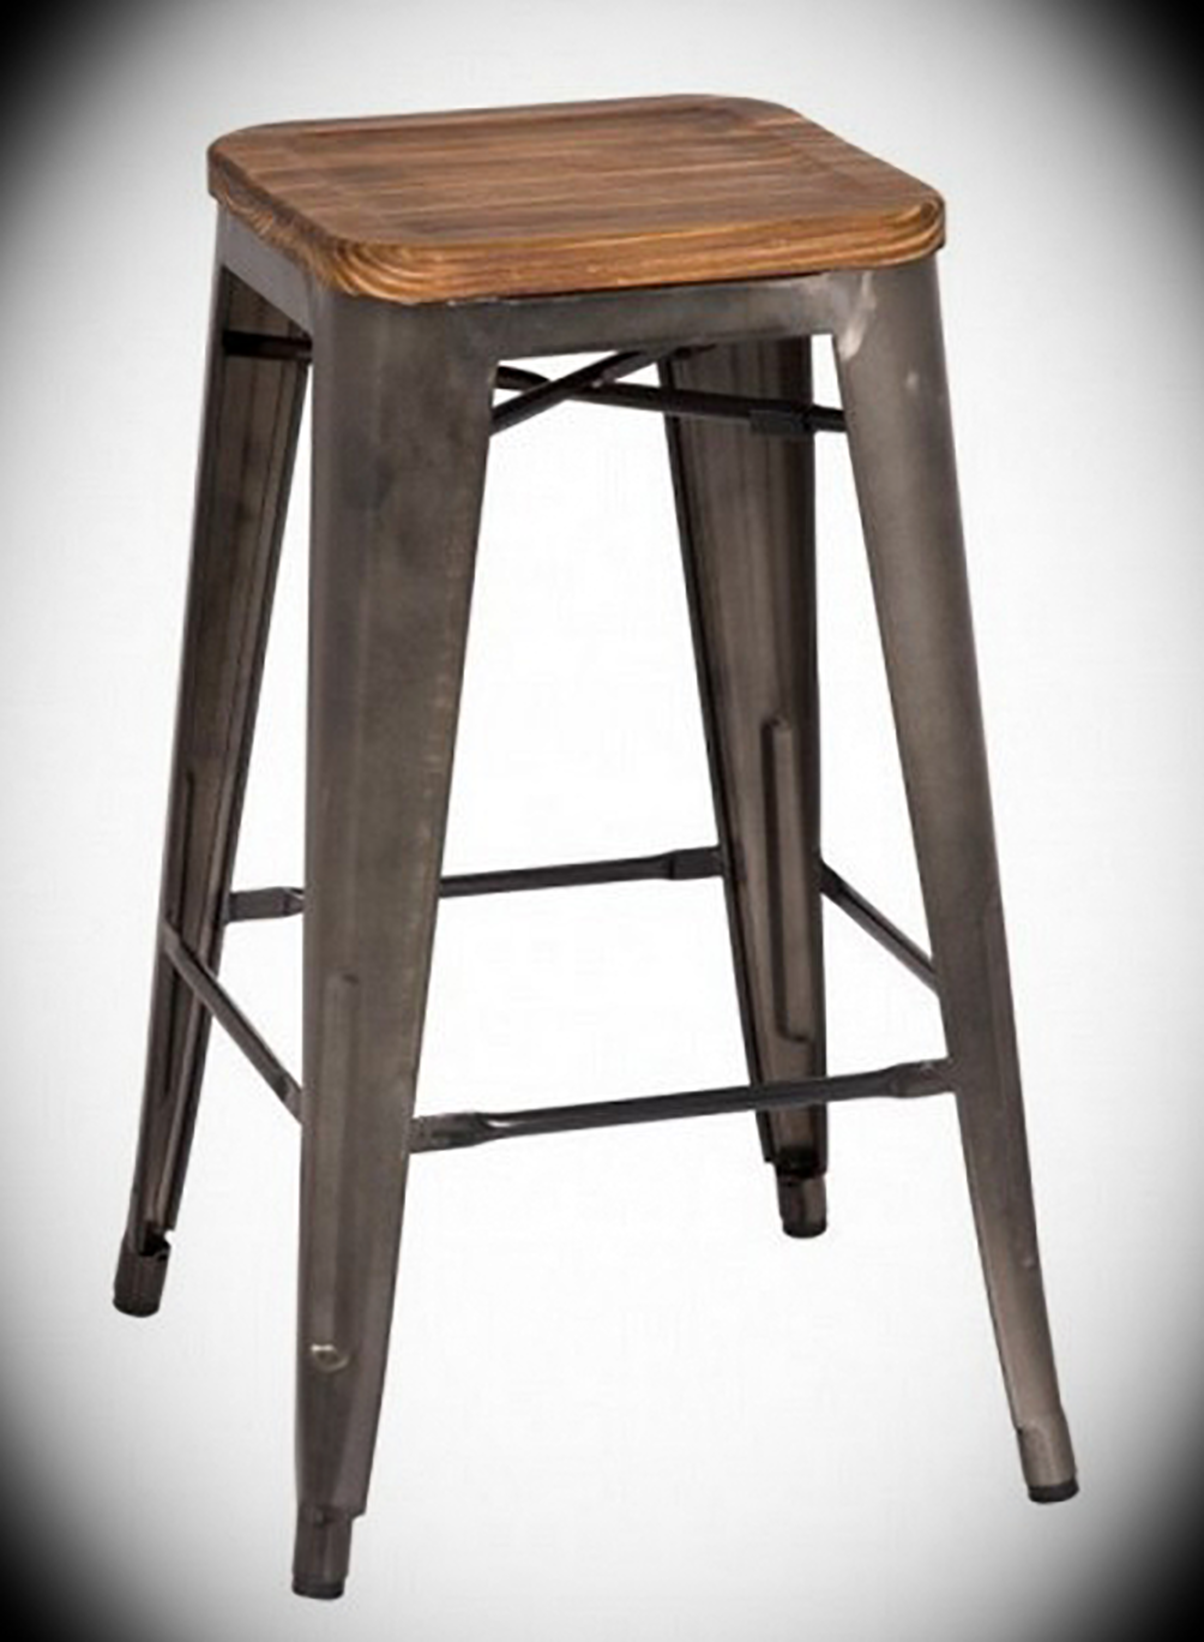 Counter height barstool metropolis gunmetal and wood width 17 height 26 depth 17 comfortable and sleek this backless counter stool with wood seat